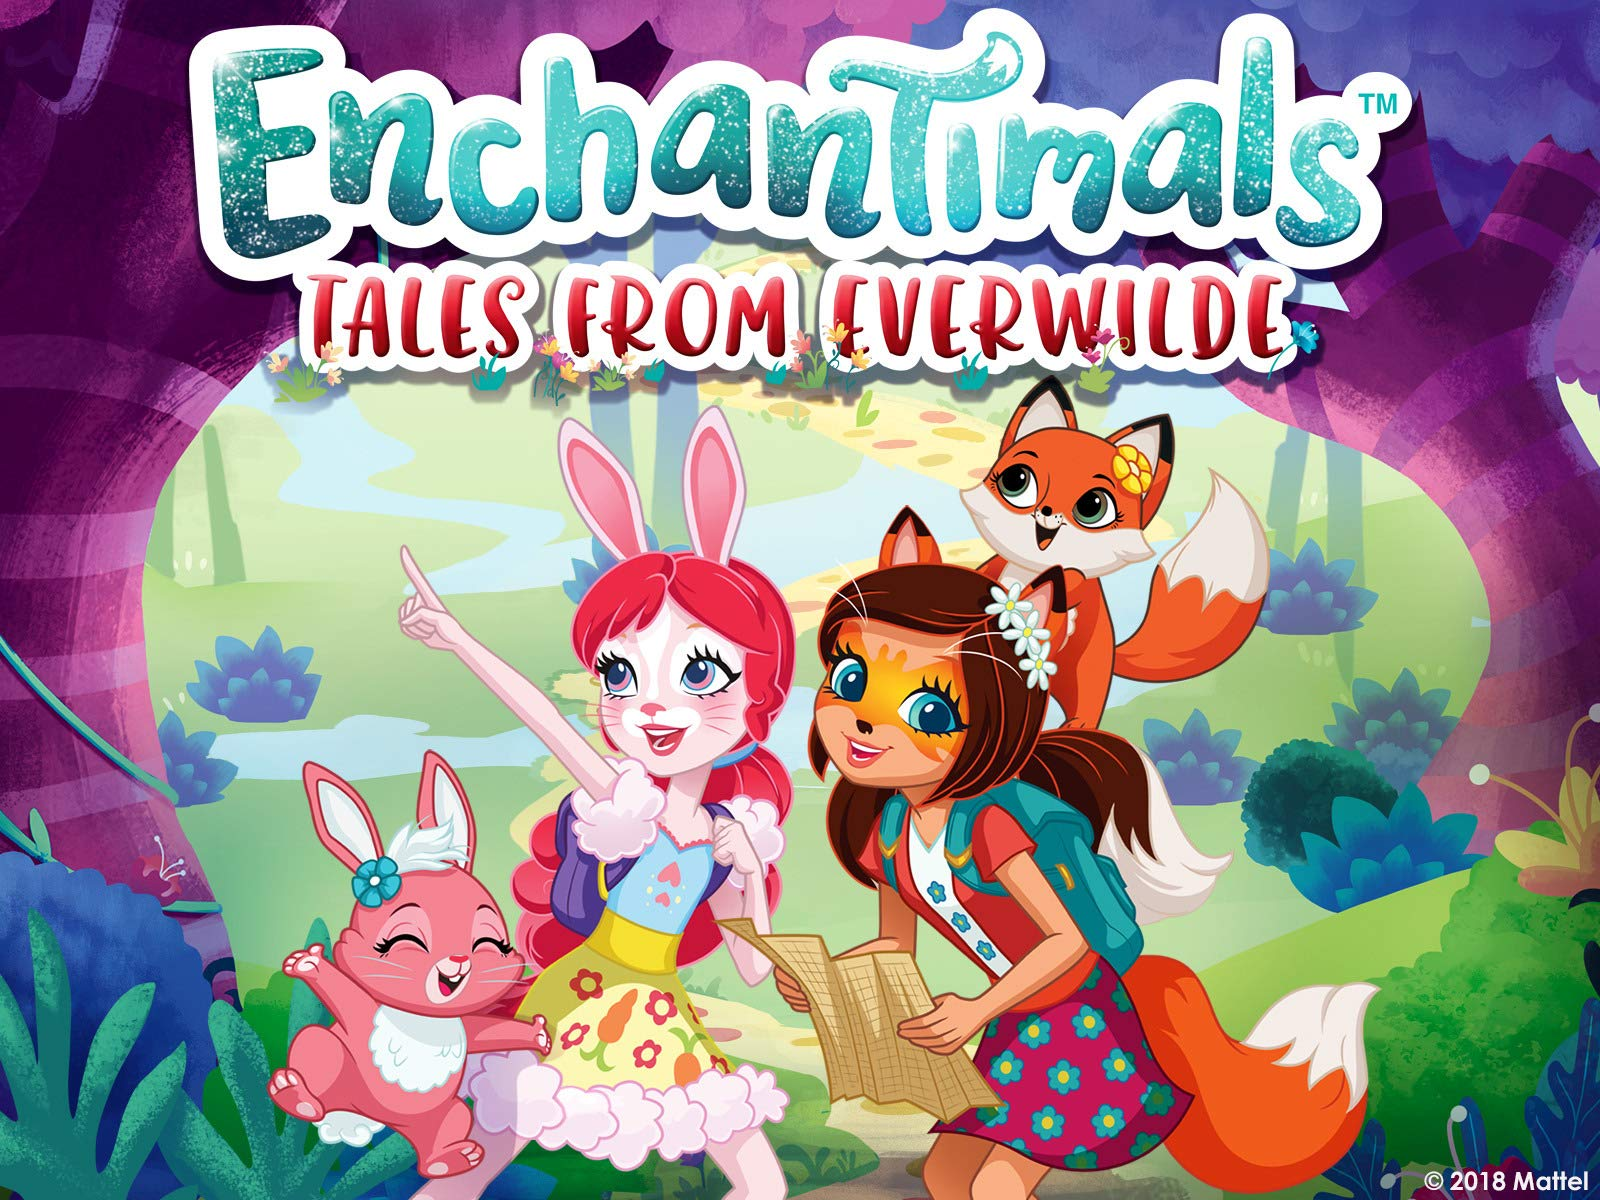 Enchantimals: Tales from Everwilde Series